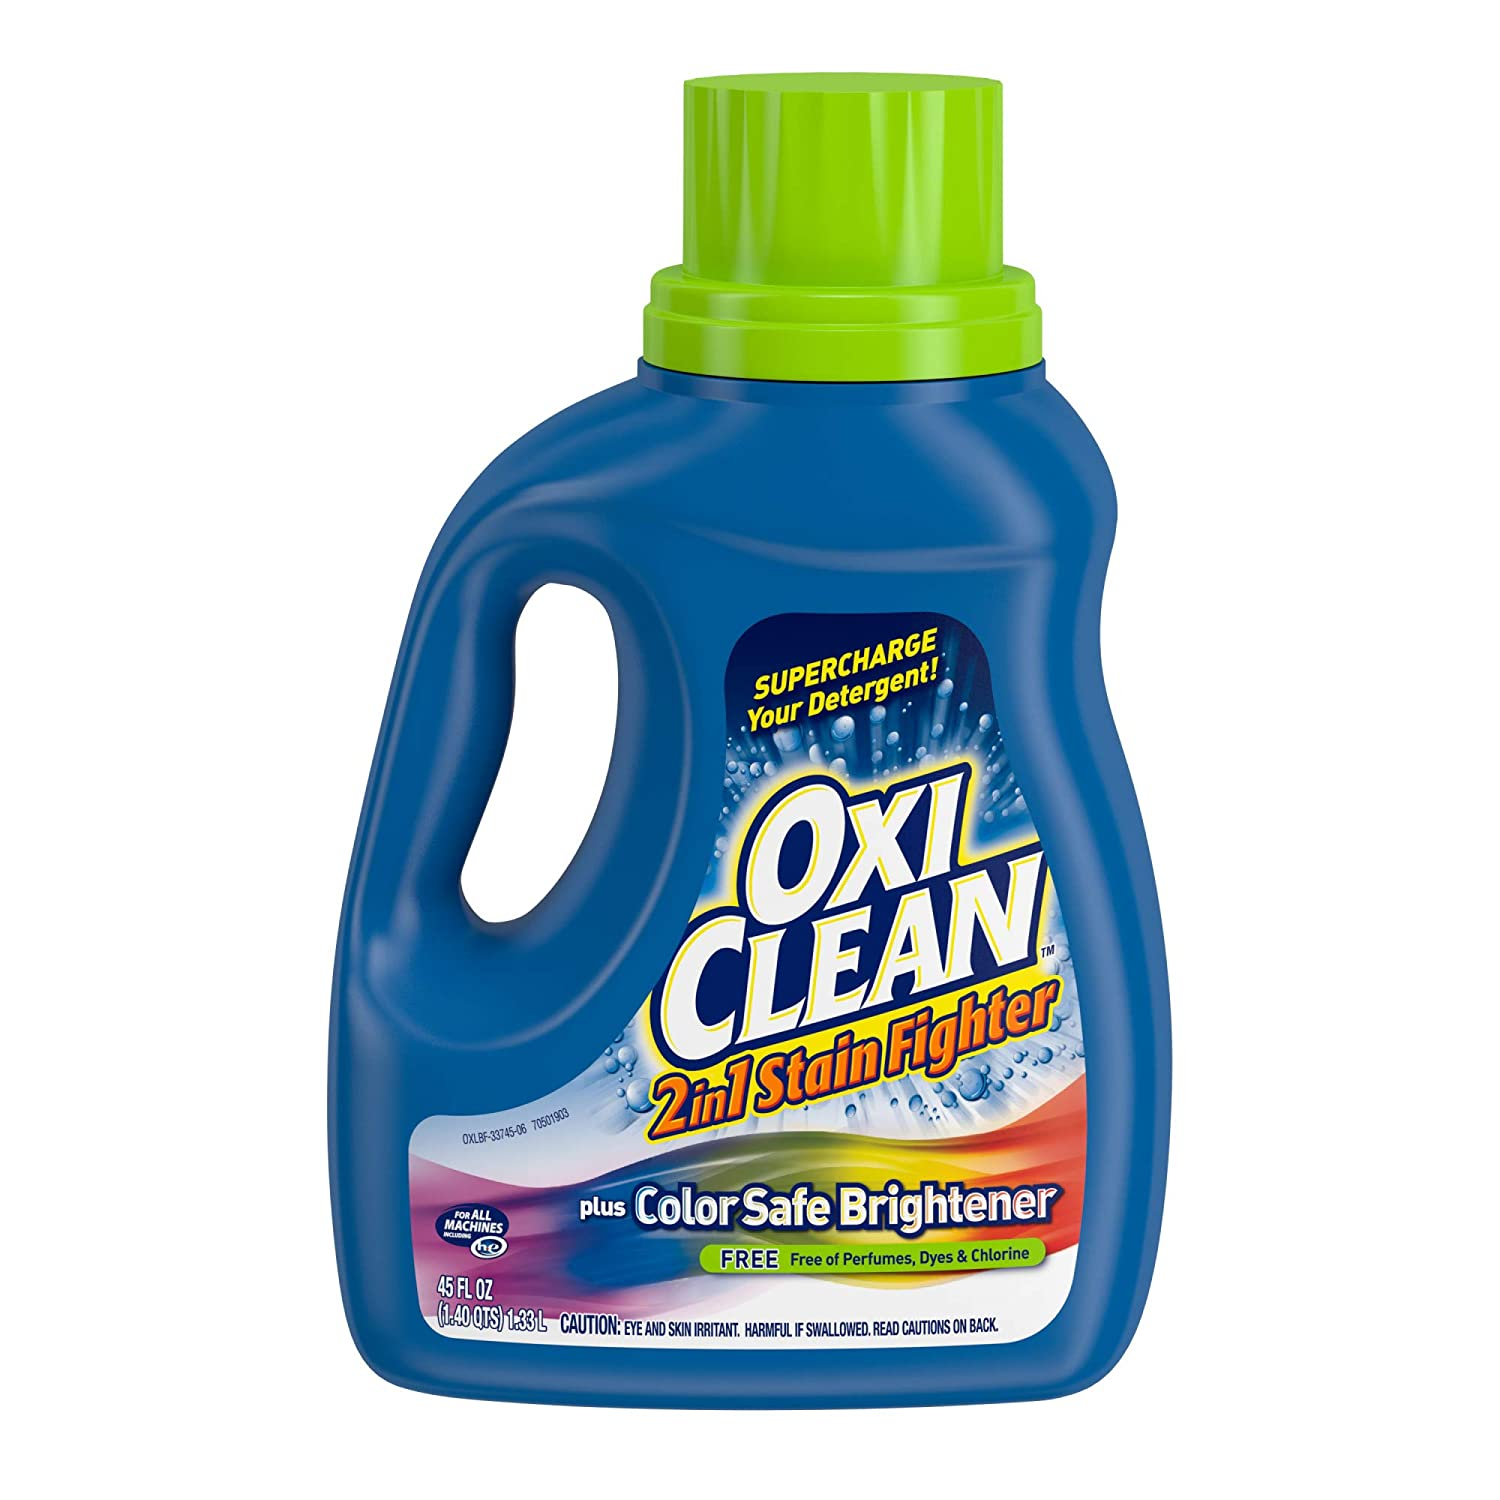 OxiClean 2-in-1 Stain Fighter, Free, 45 Oz by OxiClean B00KKJX7I8